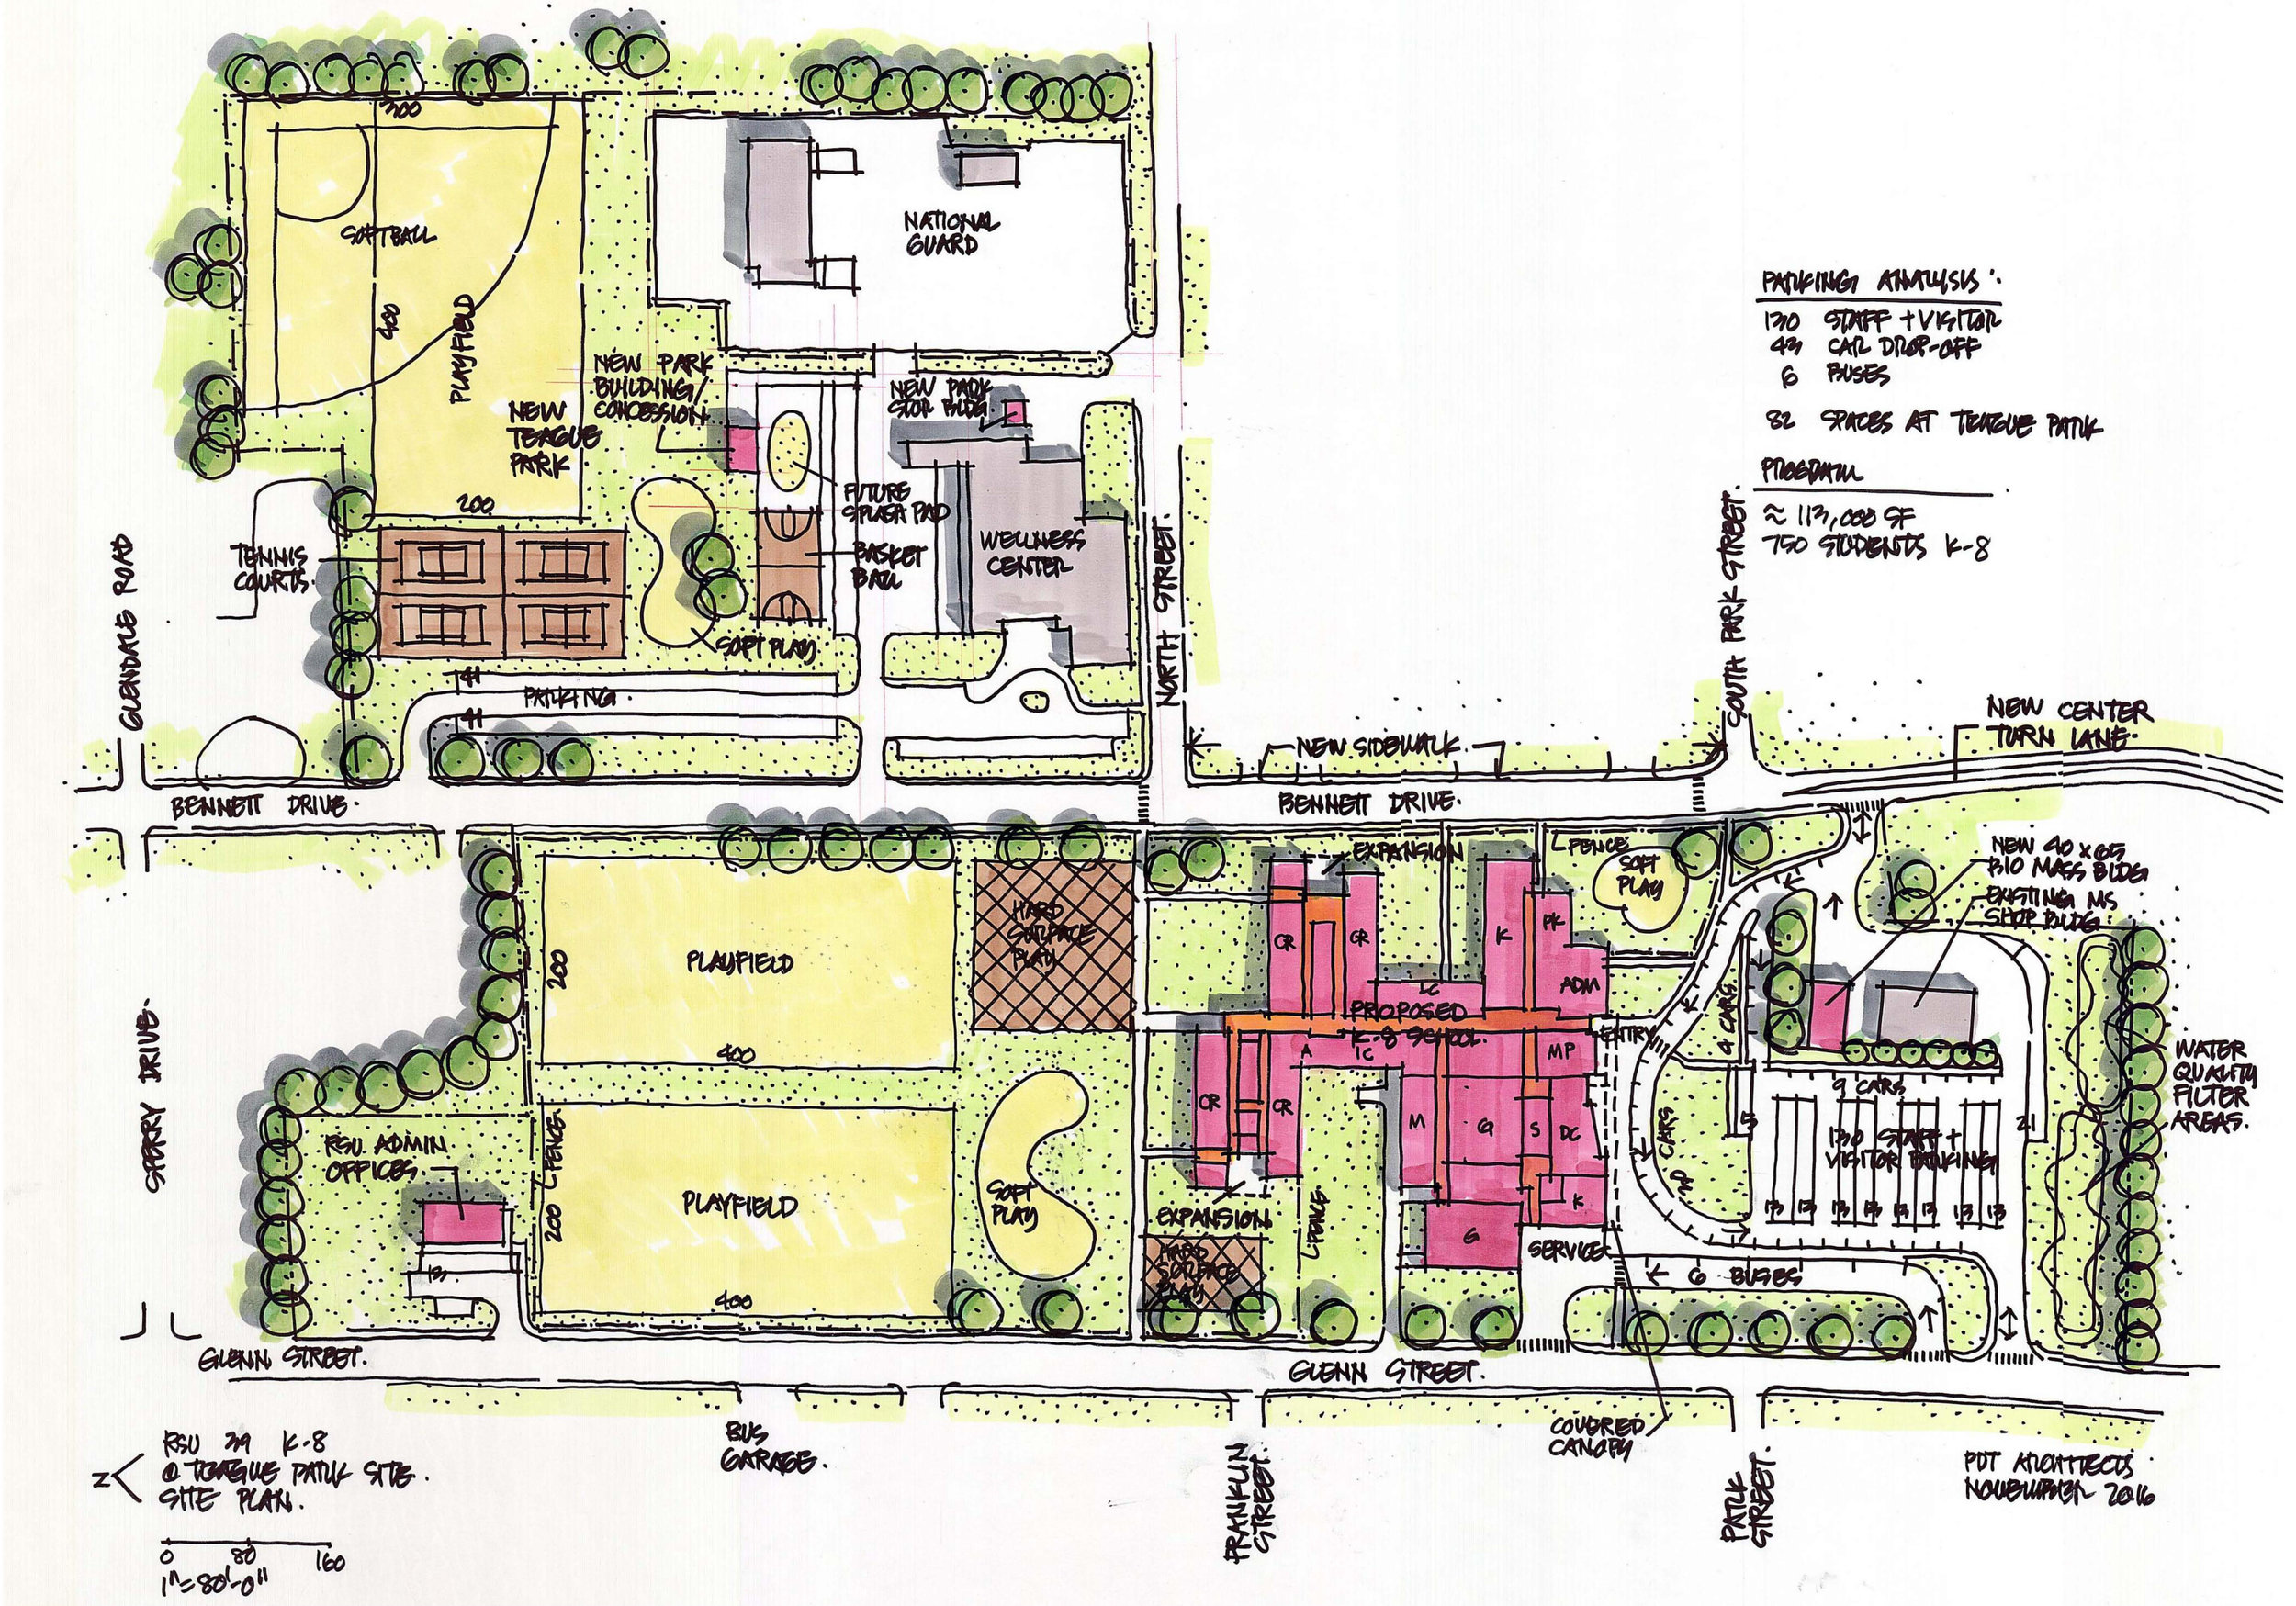 In progress —A multi-block, multi-phase master plan will consolidate 3 school facilities on a central site in Caribou.